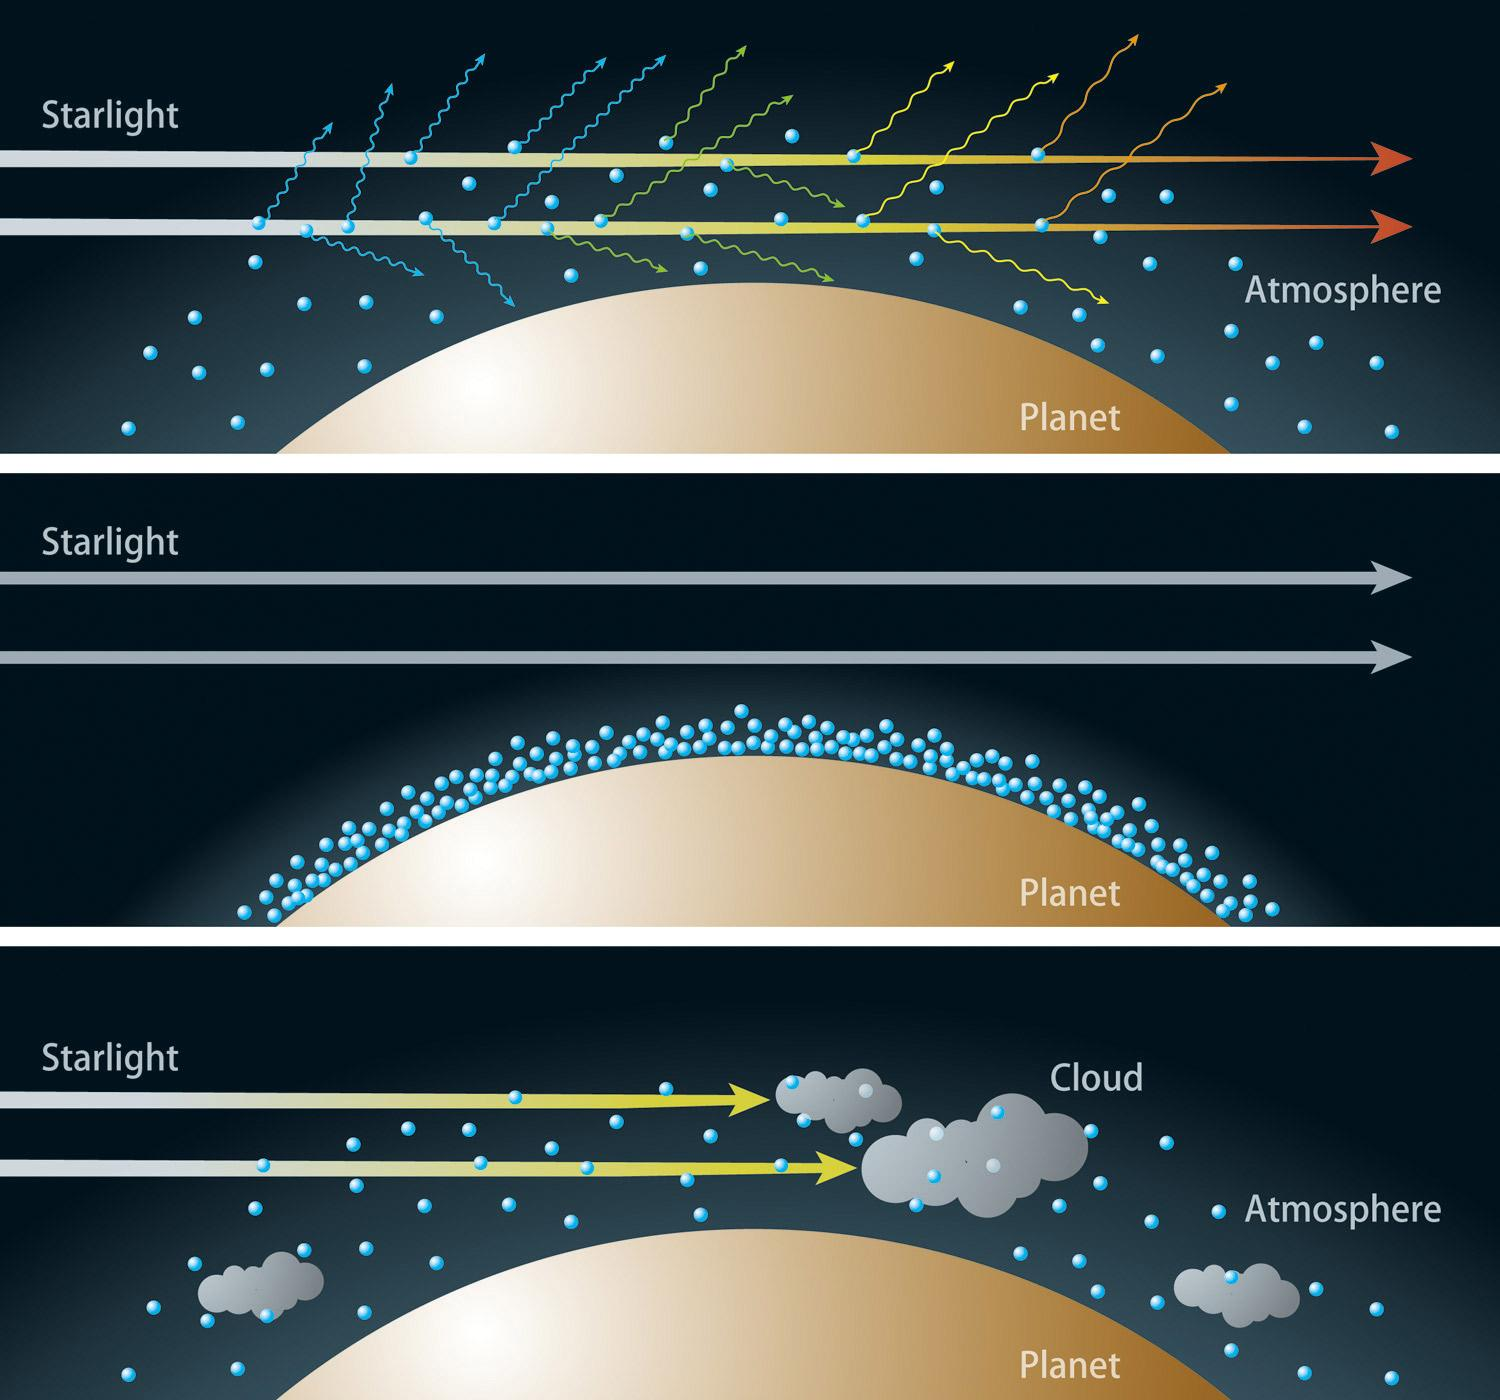 Blue Light Observations Indicate Water-Rich Atmosphere of a Super-Earth Figure2